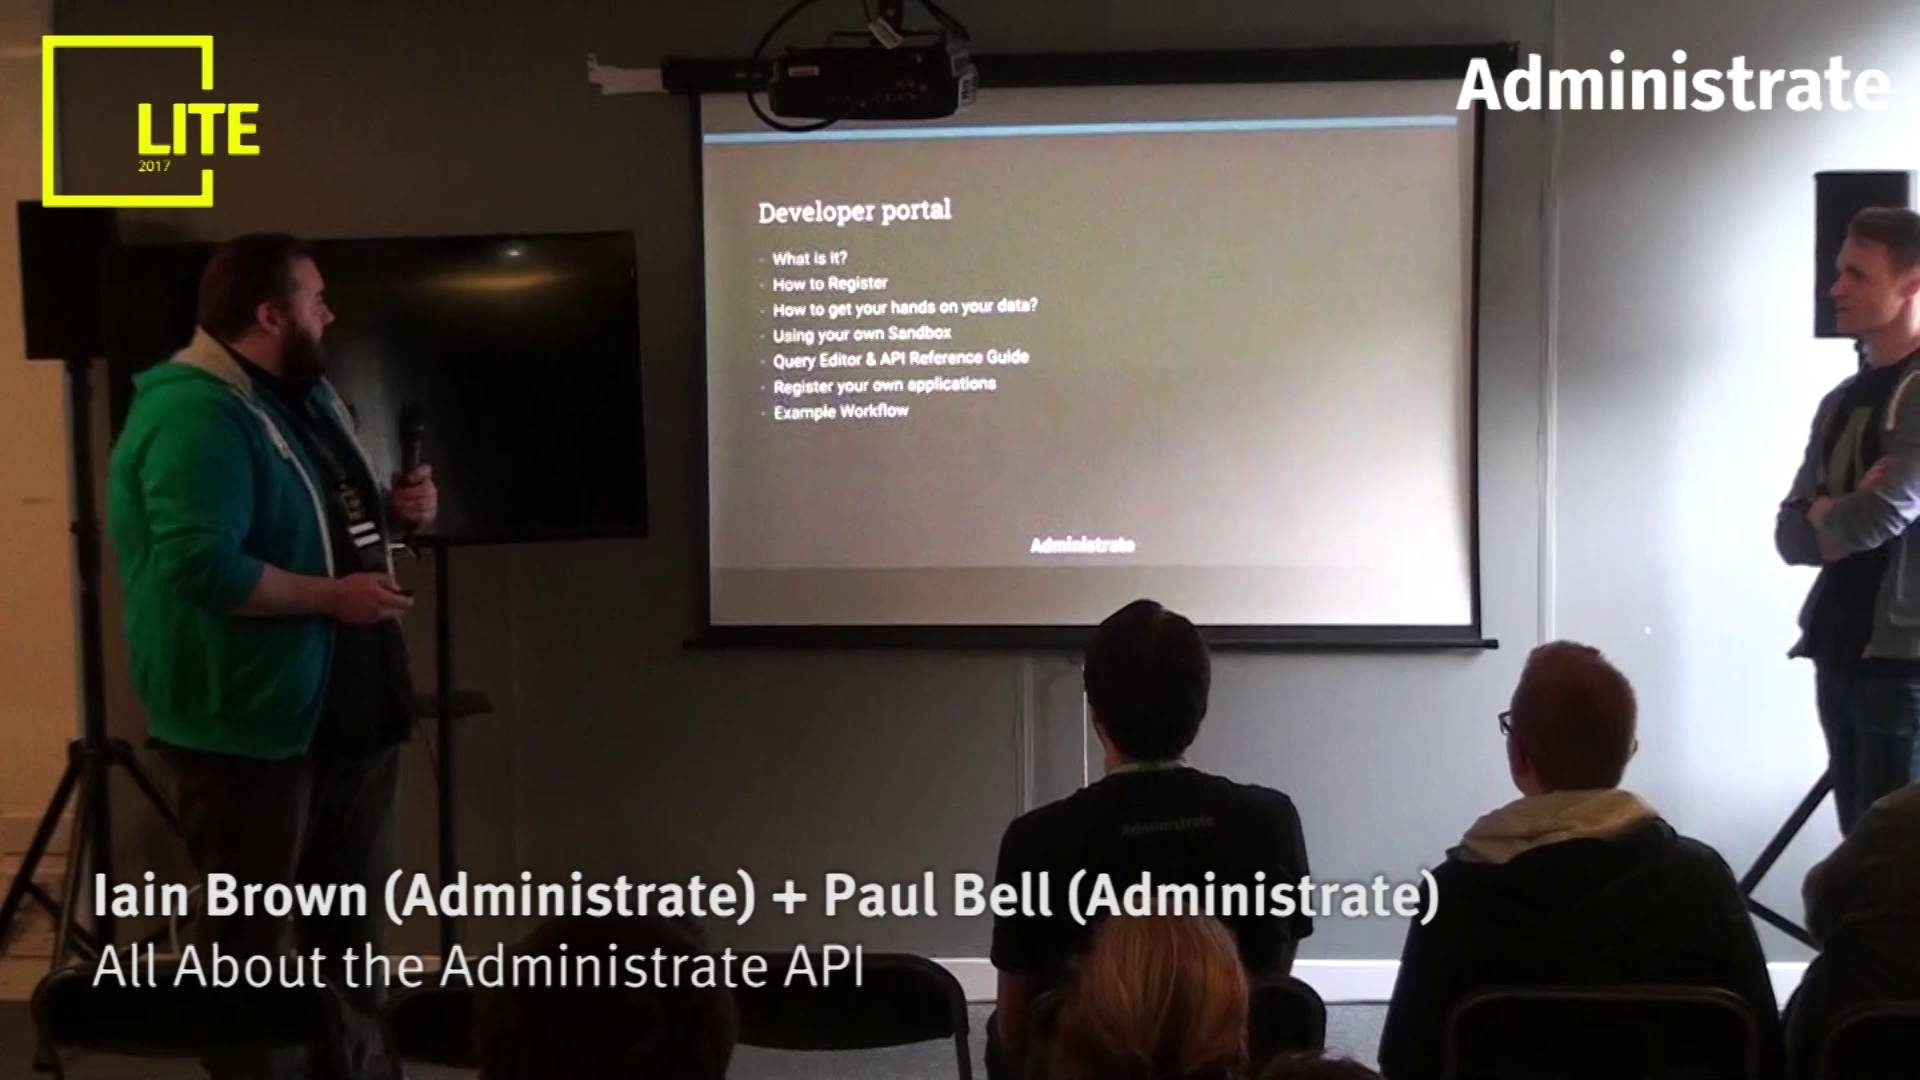 All About the Administrate API [Iain Brown & Paul Bell]